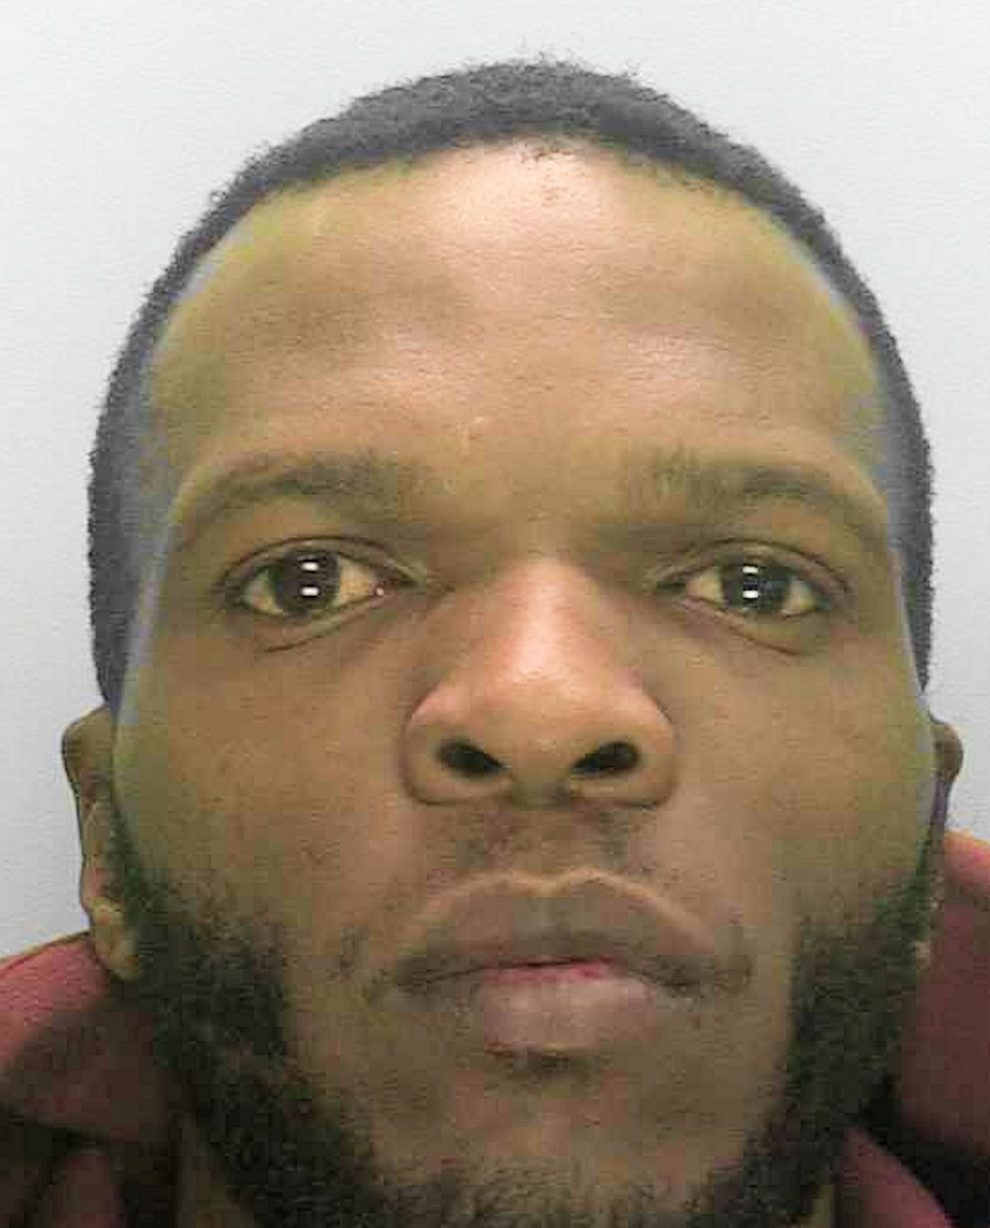 He was sentenced to 67 months imprisonment, will be a registered sex offender indefinitely, UKNIP